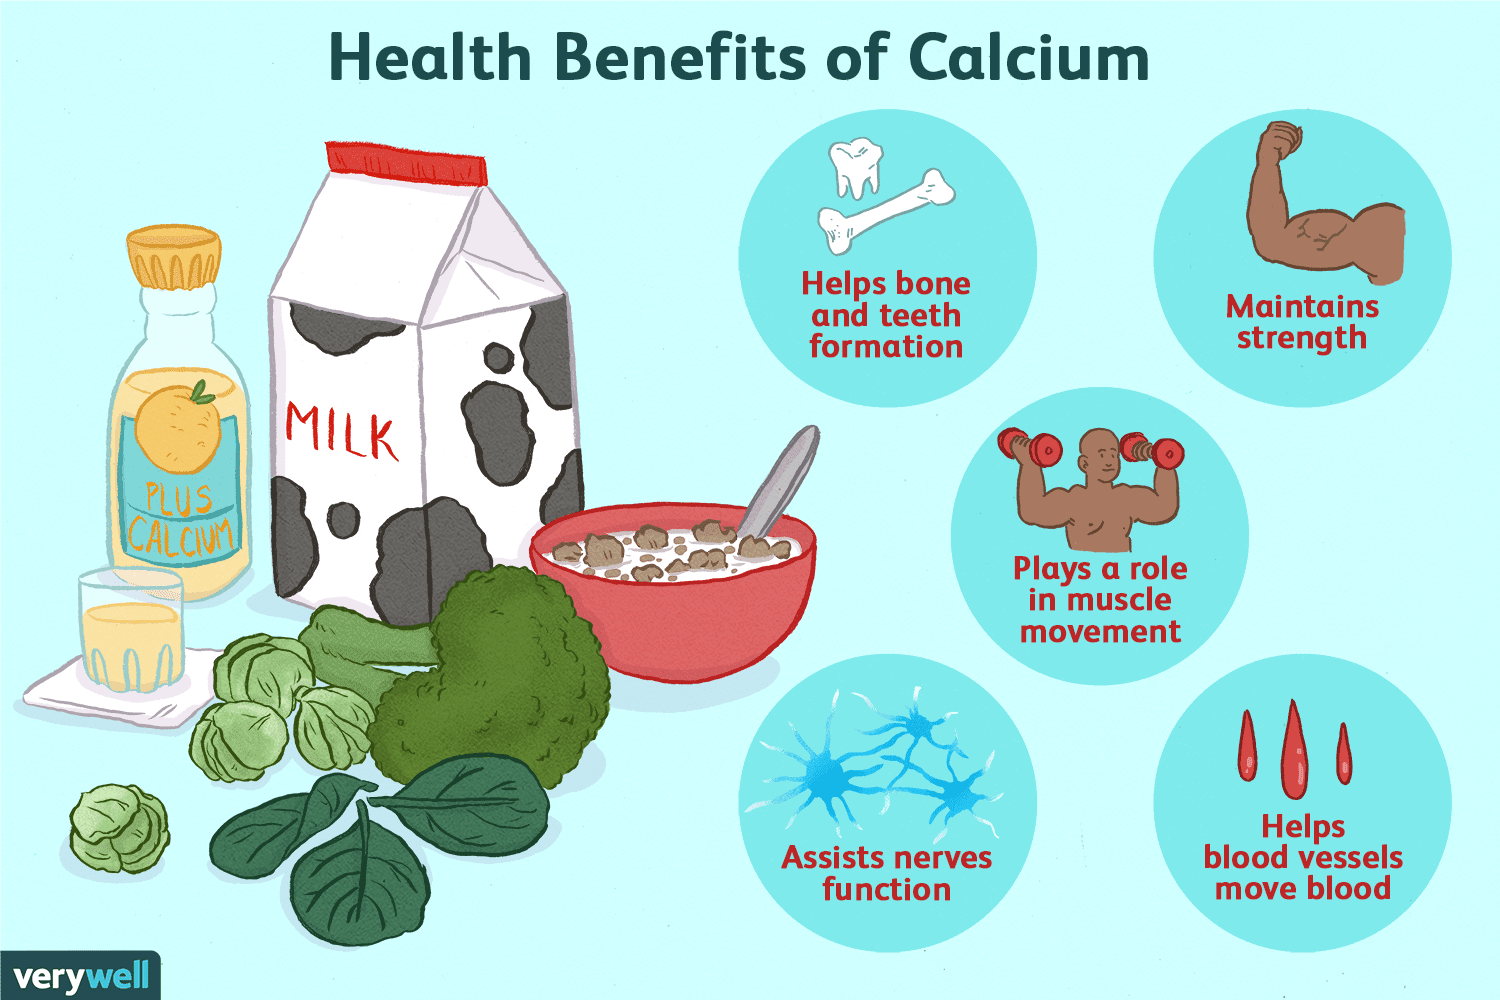 Calcium: Benefits, Side Effects, Dosage, and Interactions